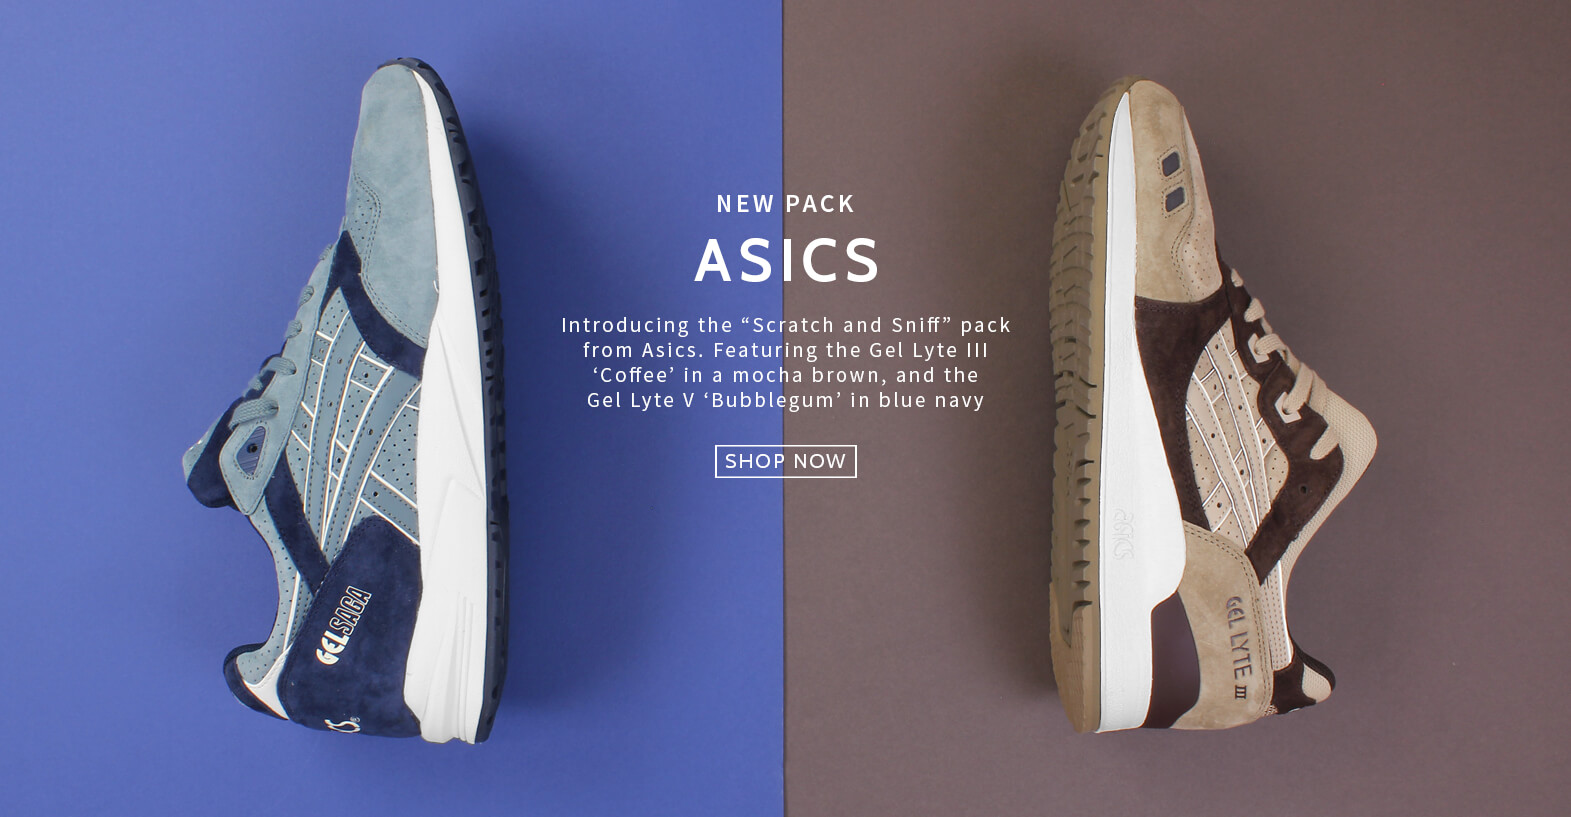 Asics scratch and sniff